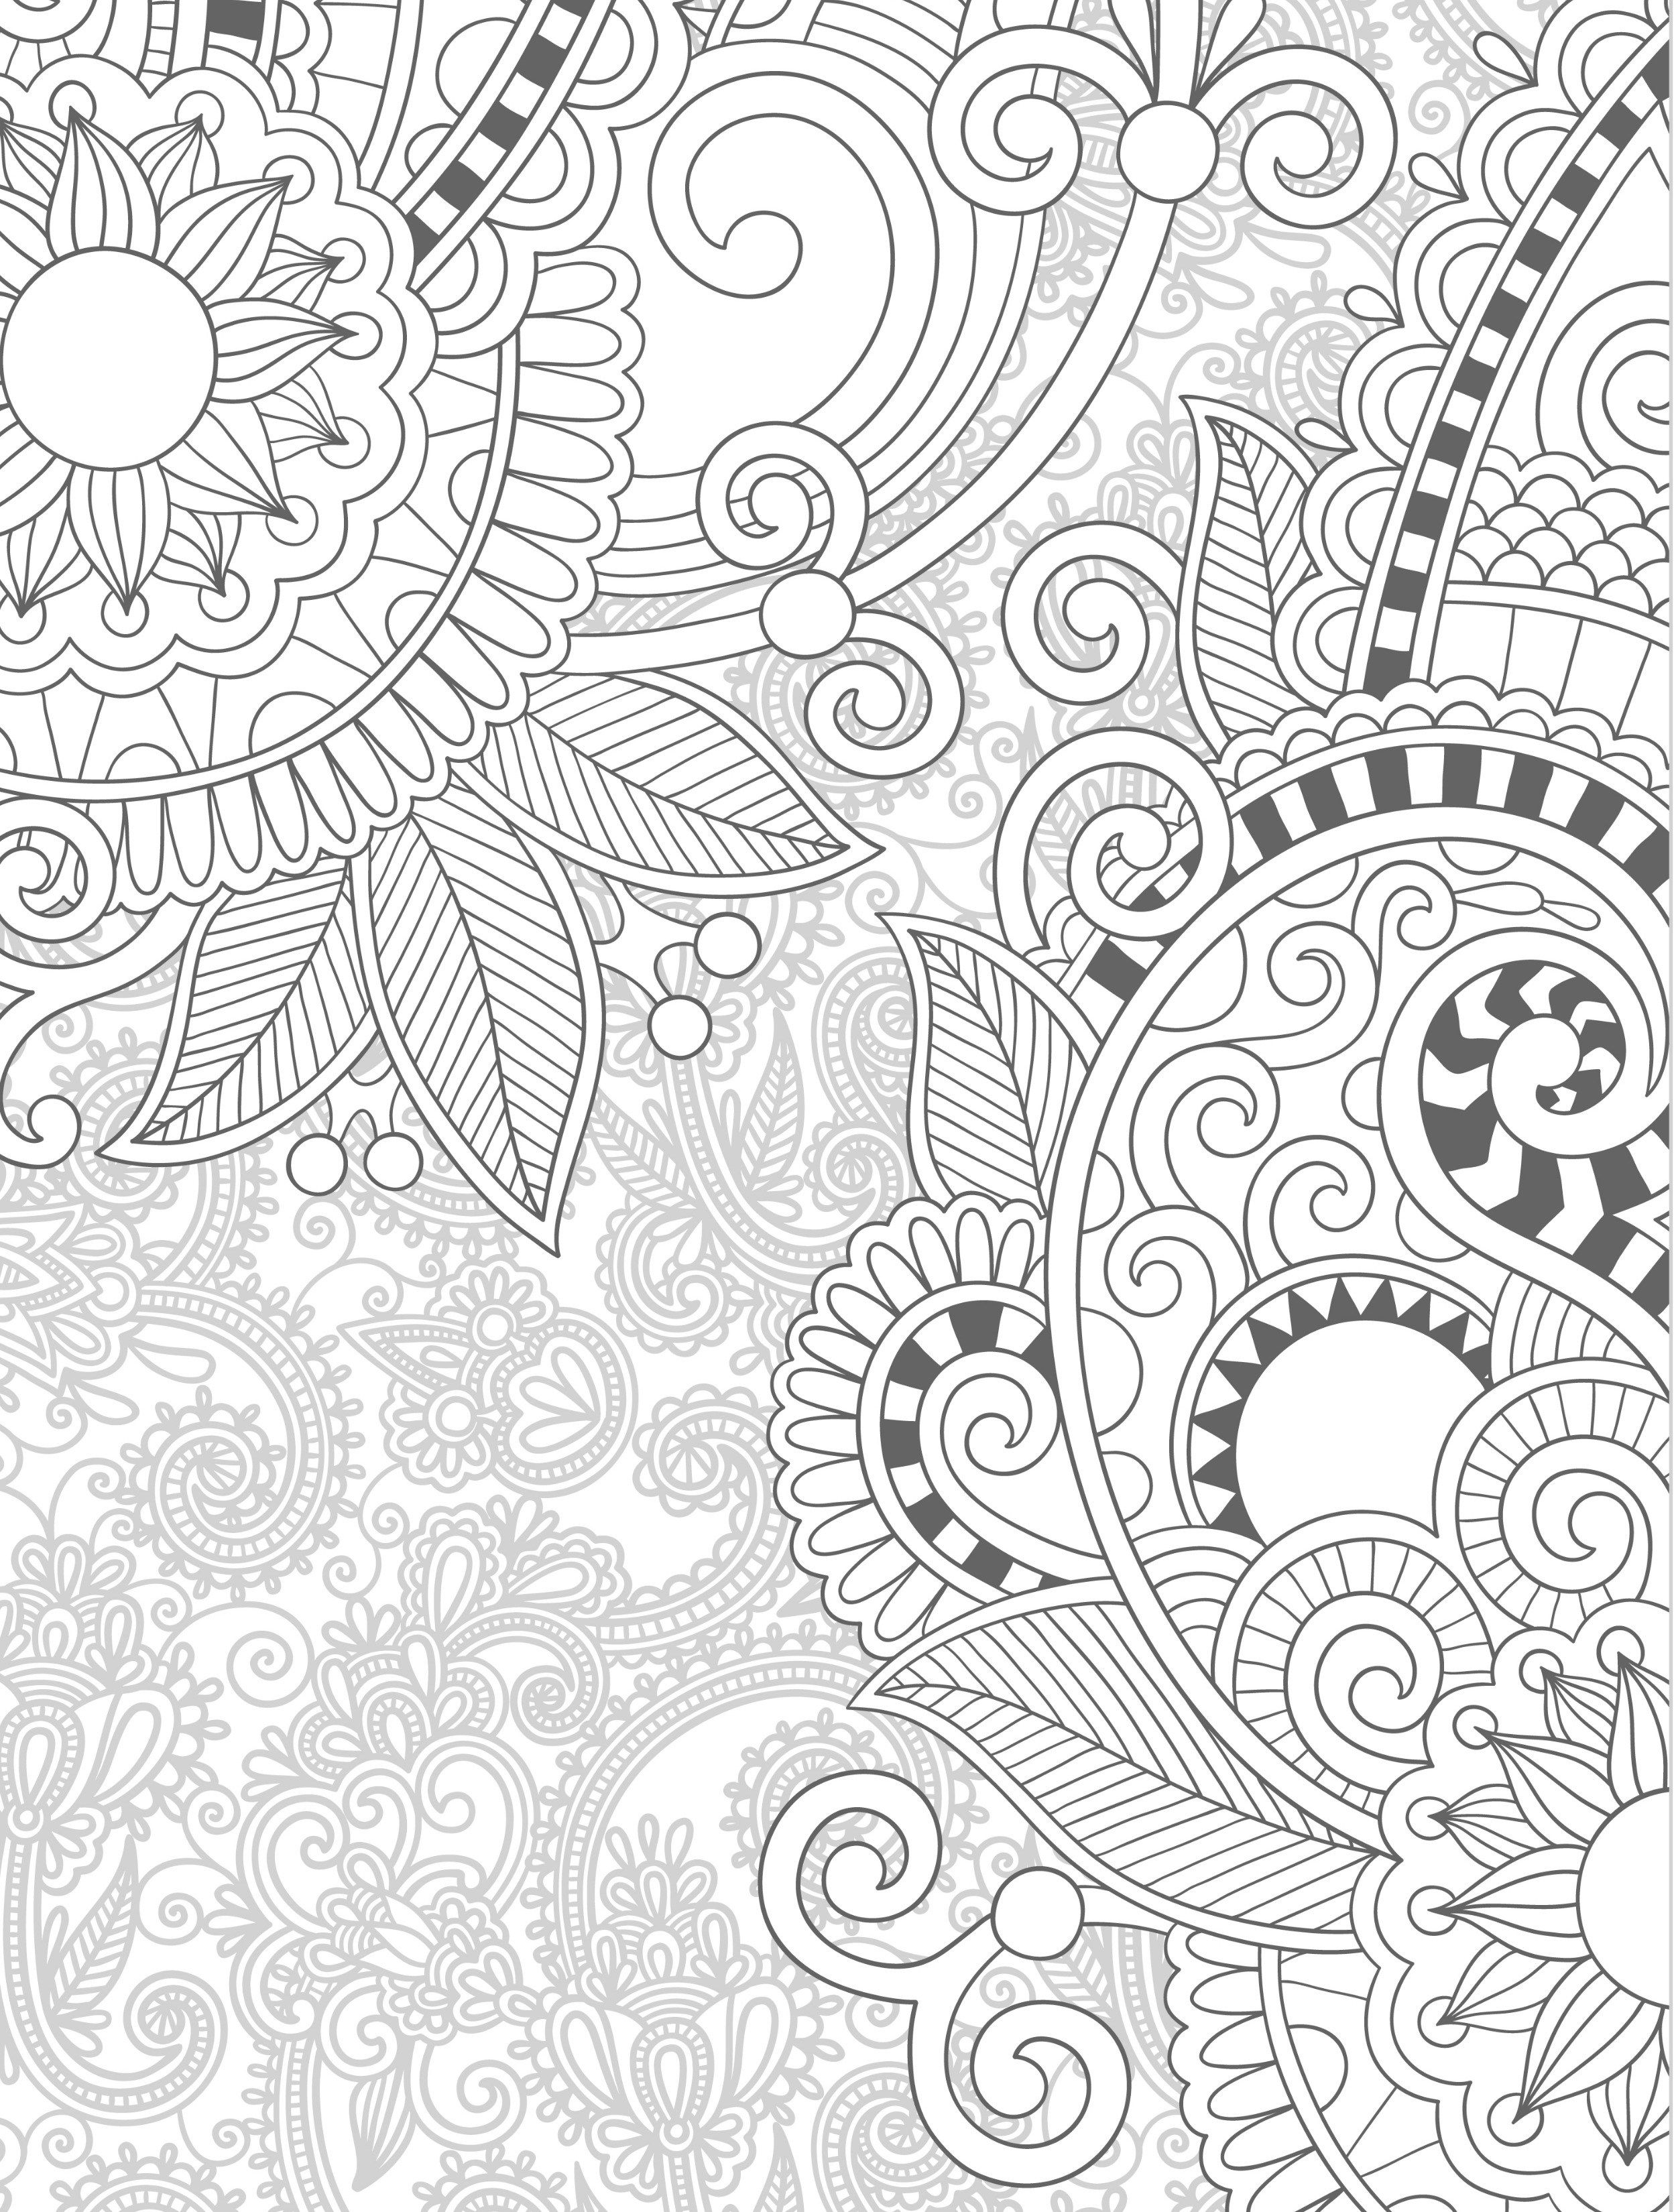 free downloadfloral free printable coloring pages for adults